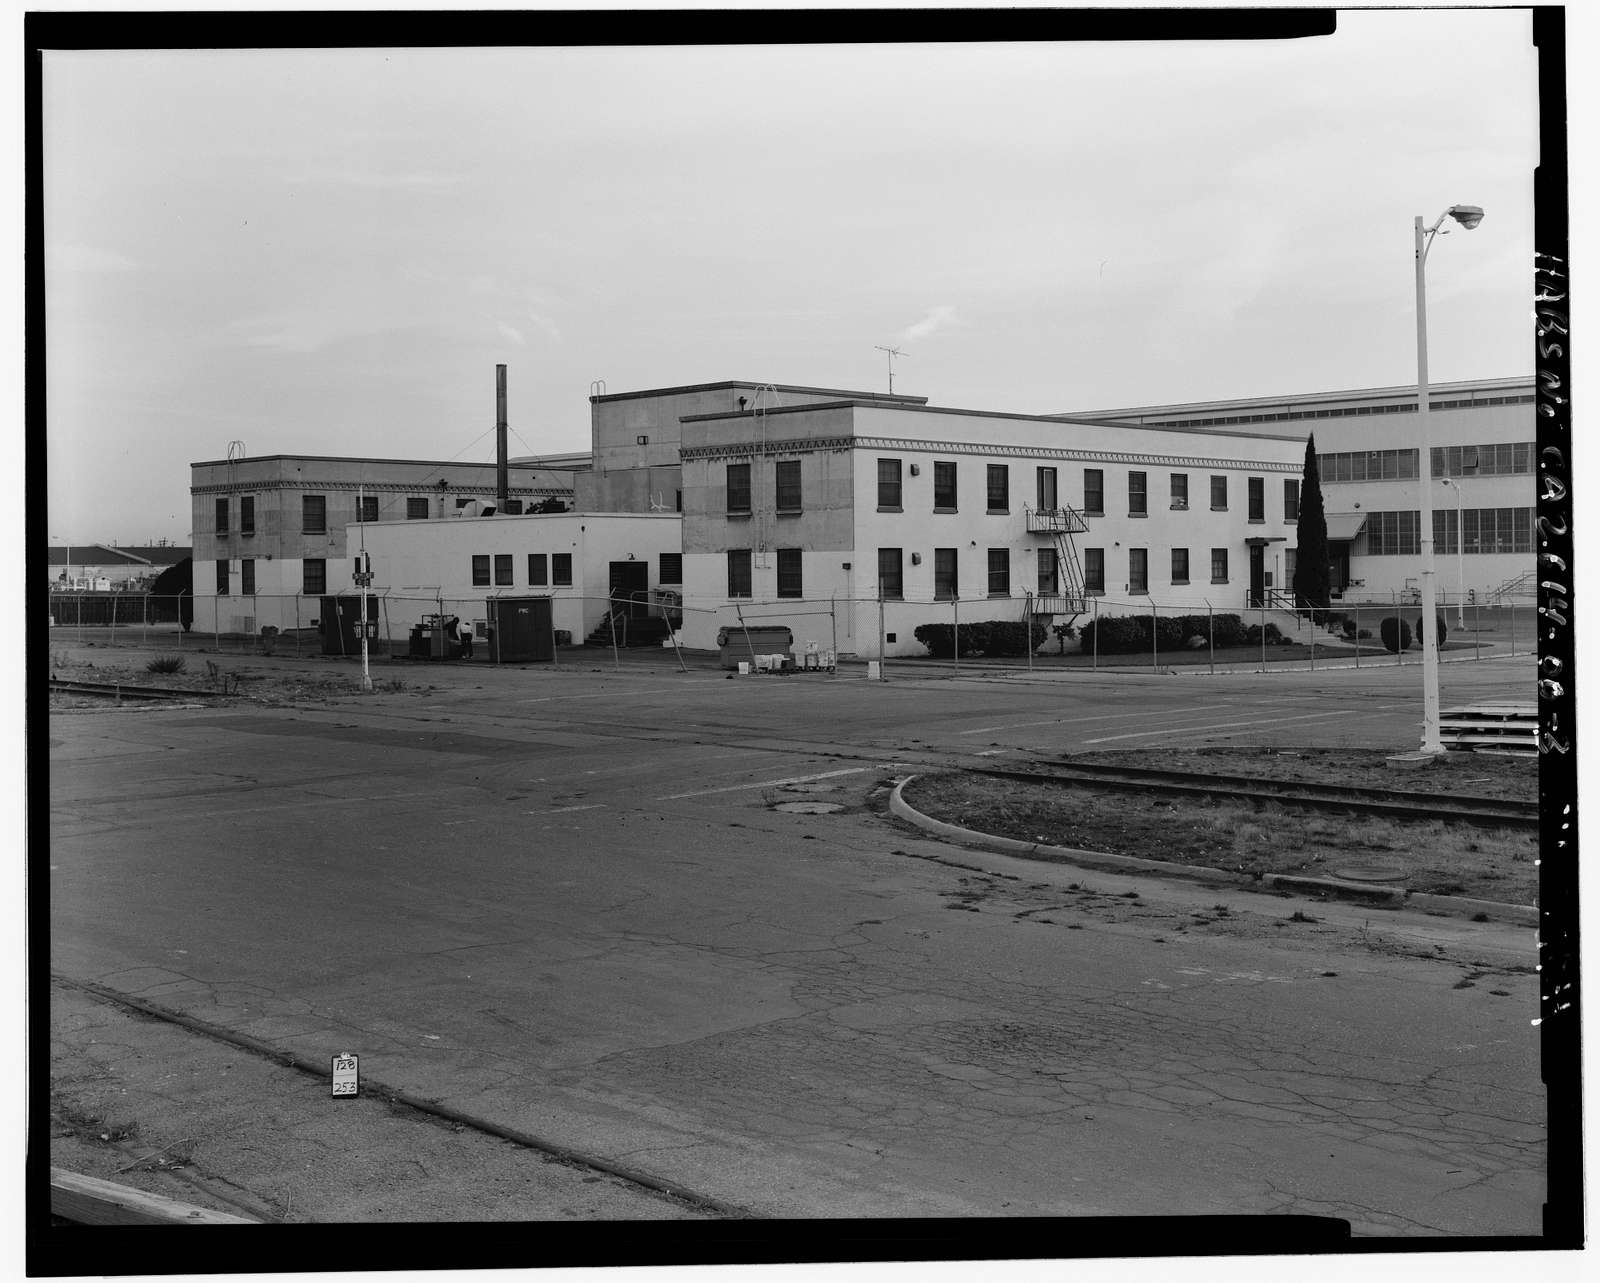 Oakland Naval Supply Center, Lodge-Cafeteria, East of Fifth Street, between D & E Streets, Oakland, Alameda County, CA